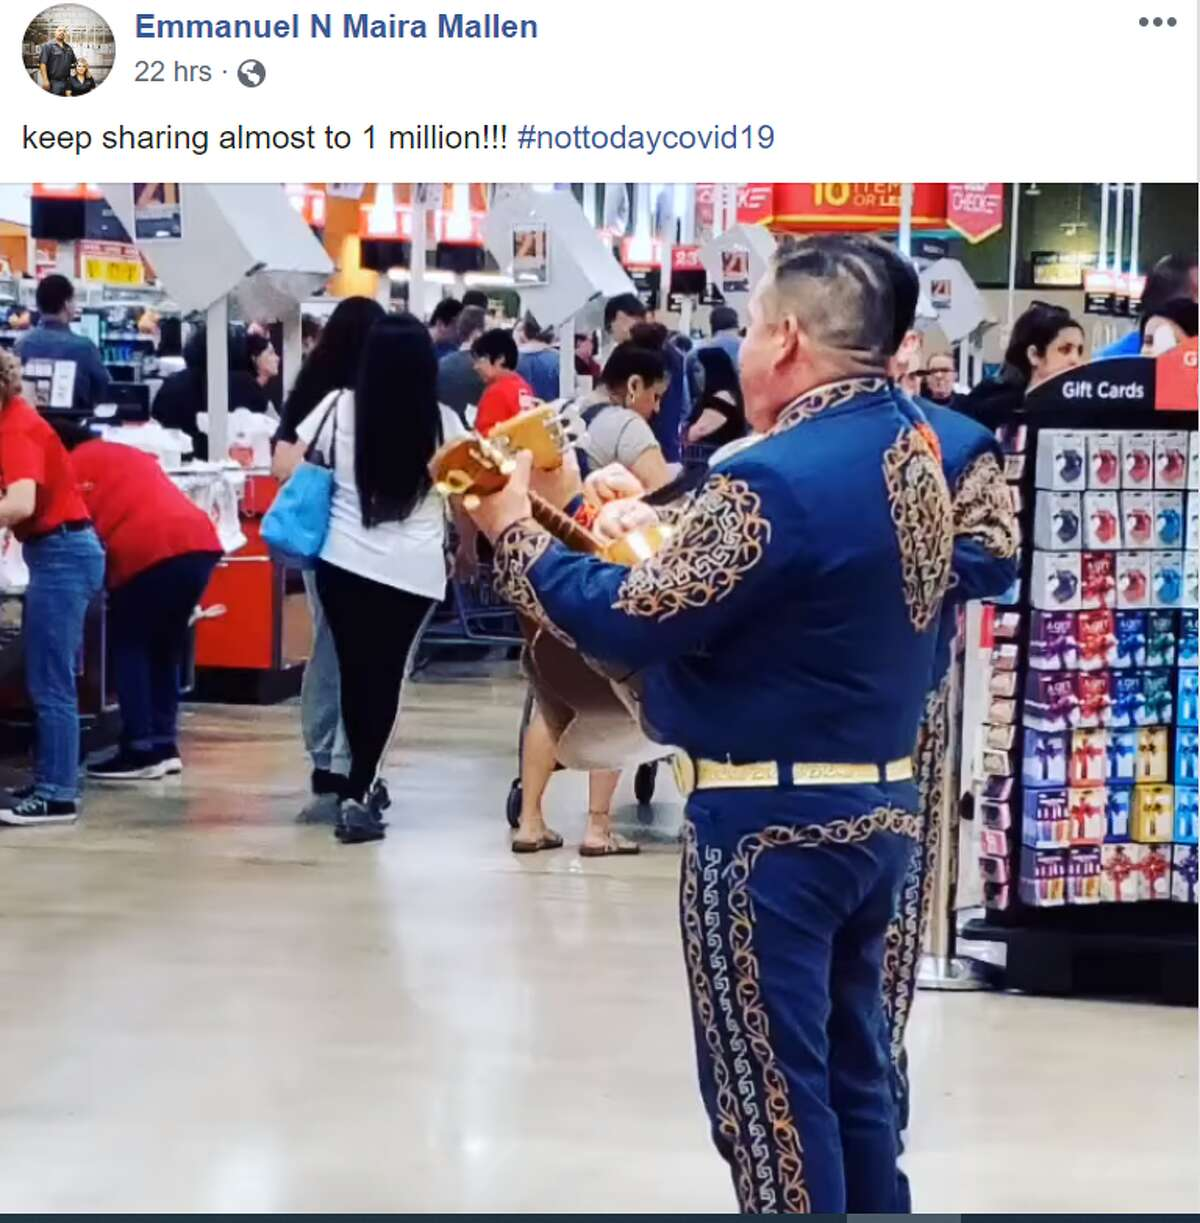 A Texas couple hired a Mariachi group to play for a crowded H-E-B in San Antonio, TX to ease tensions amid COVID-19 concerns.